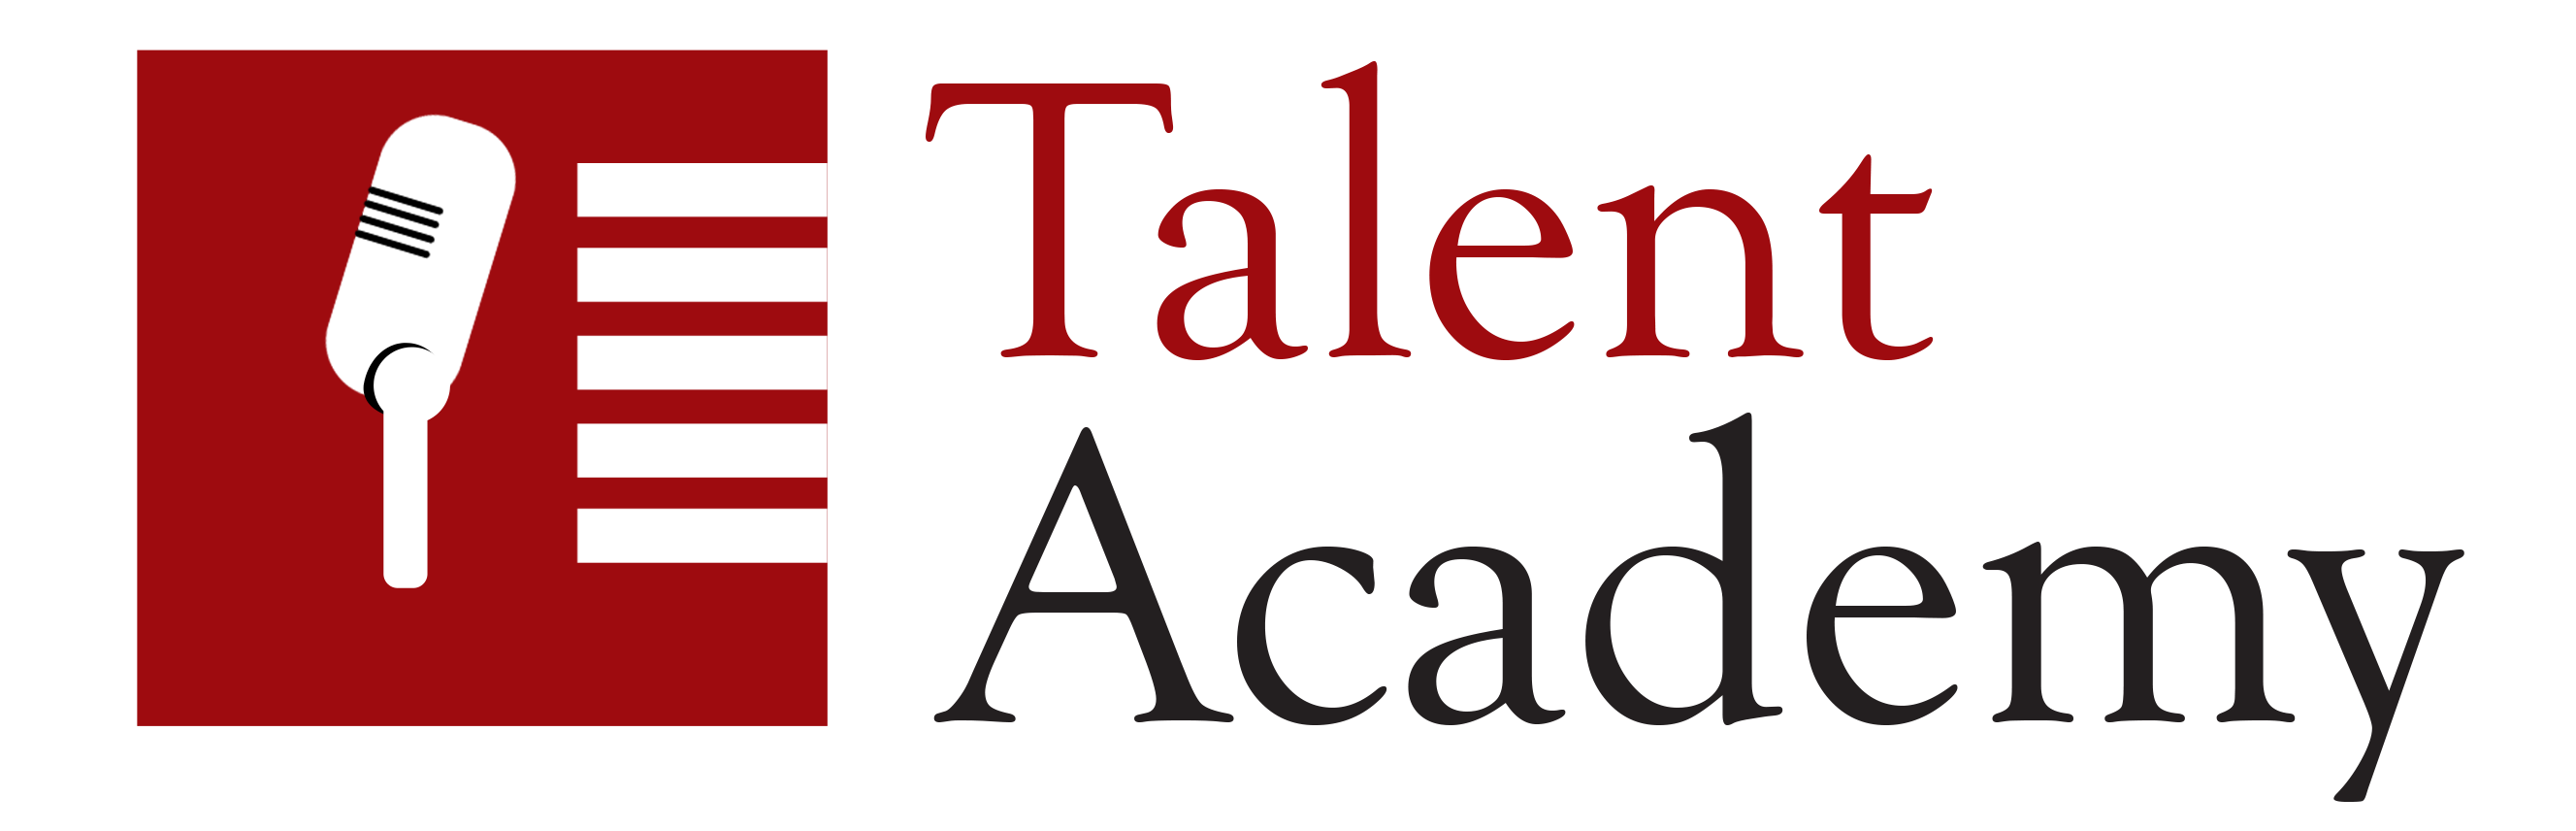 Talent Academy Logo